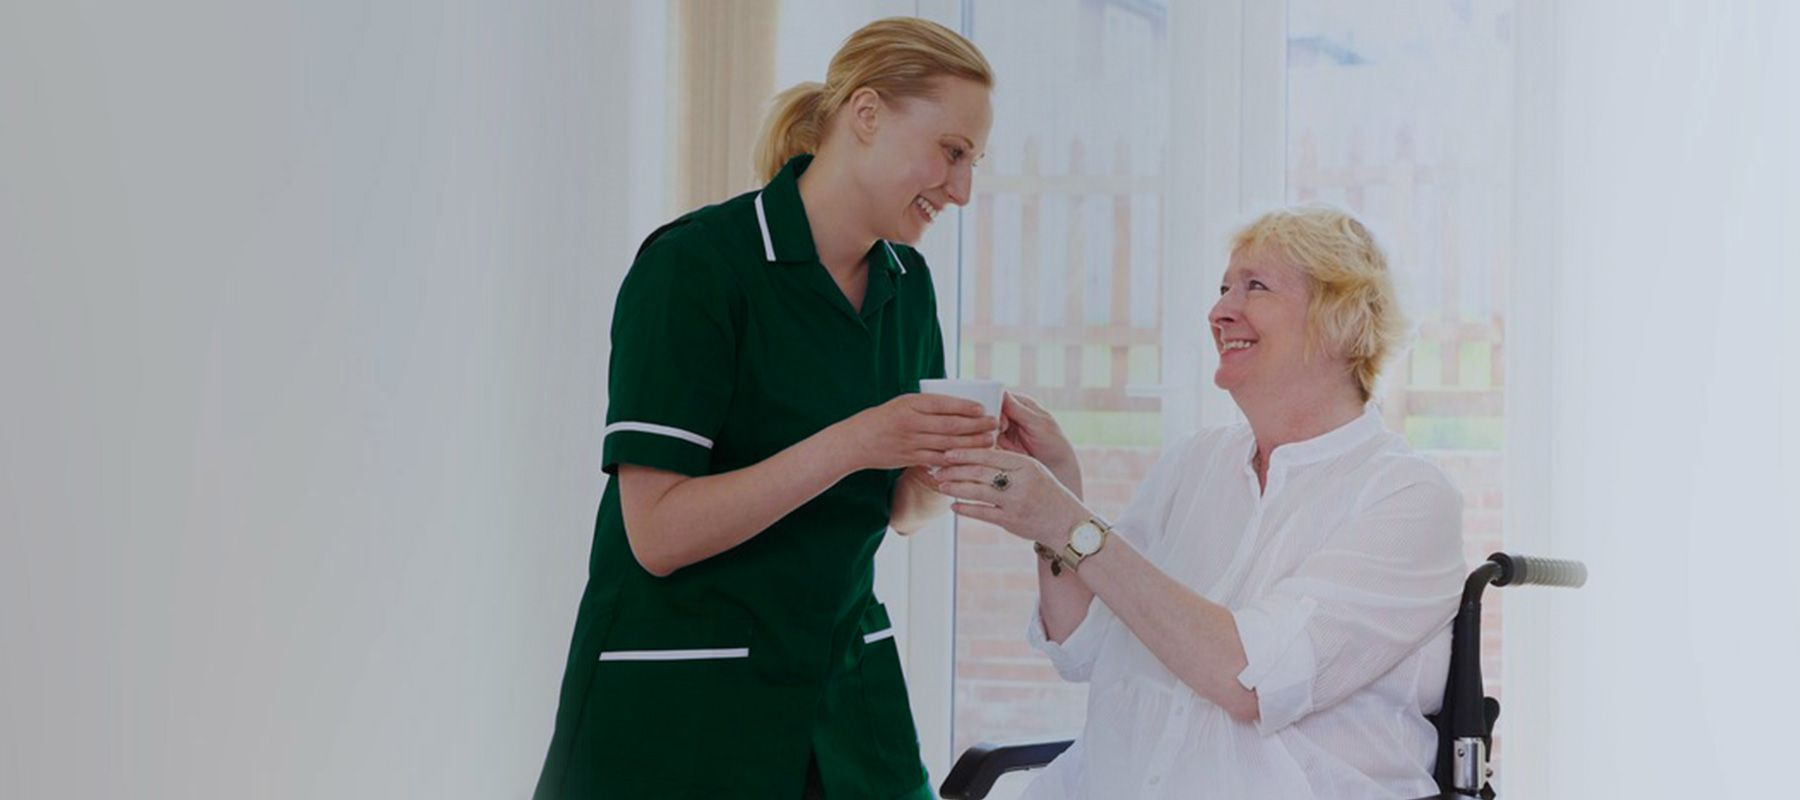 5 Key Considerations When Hiring a Personal Care Assistant